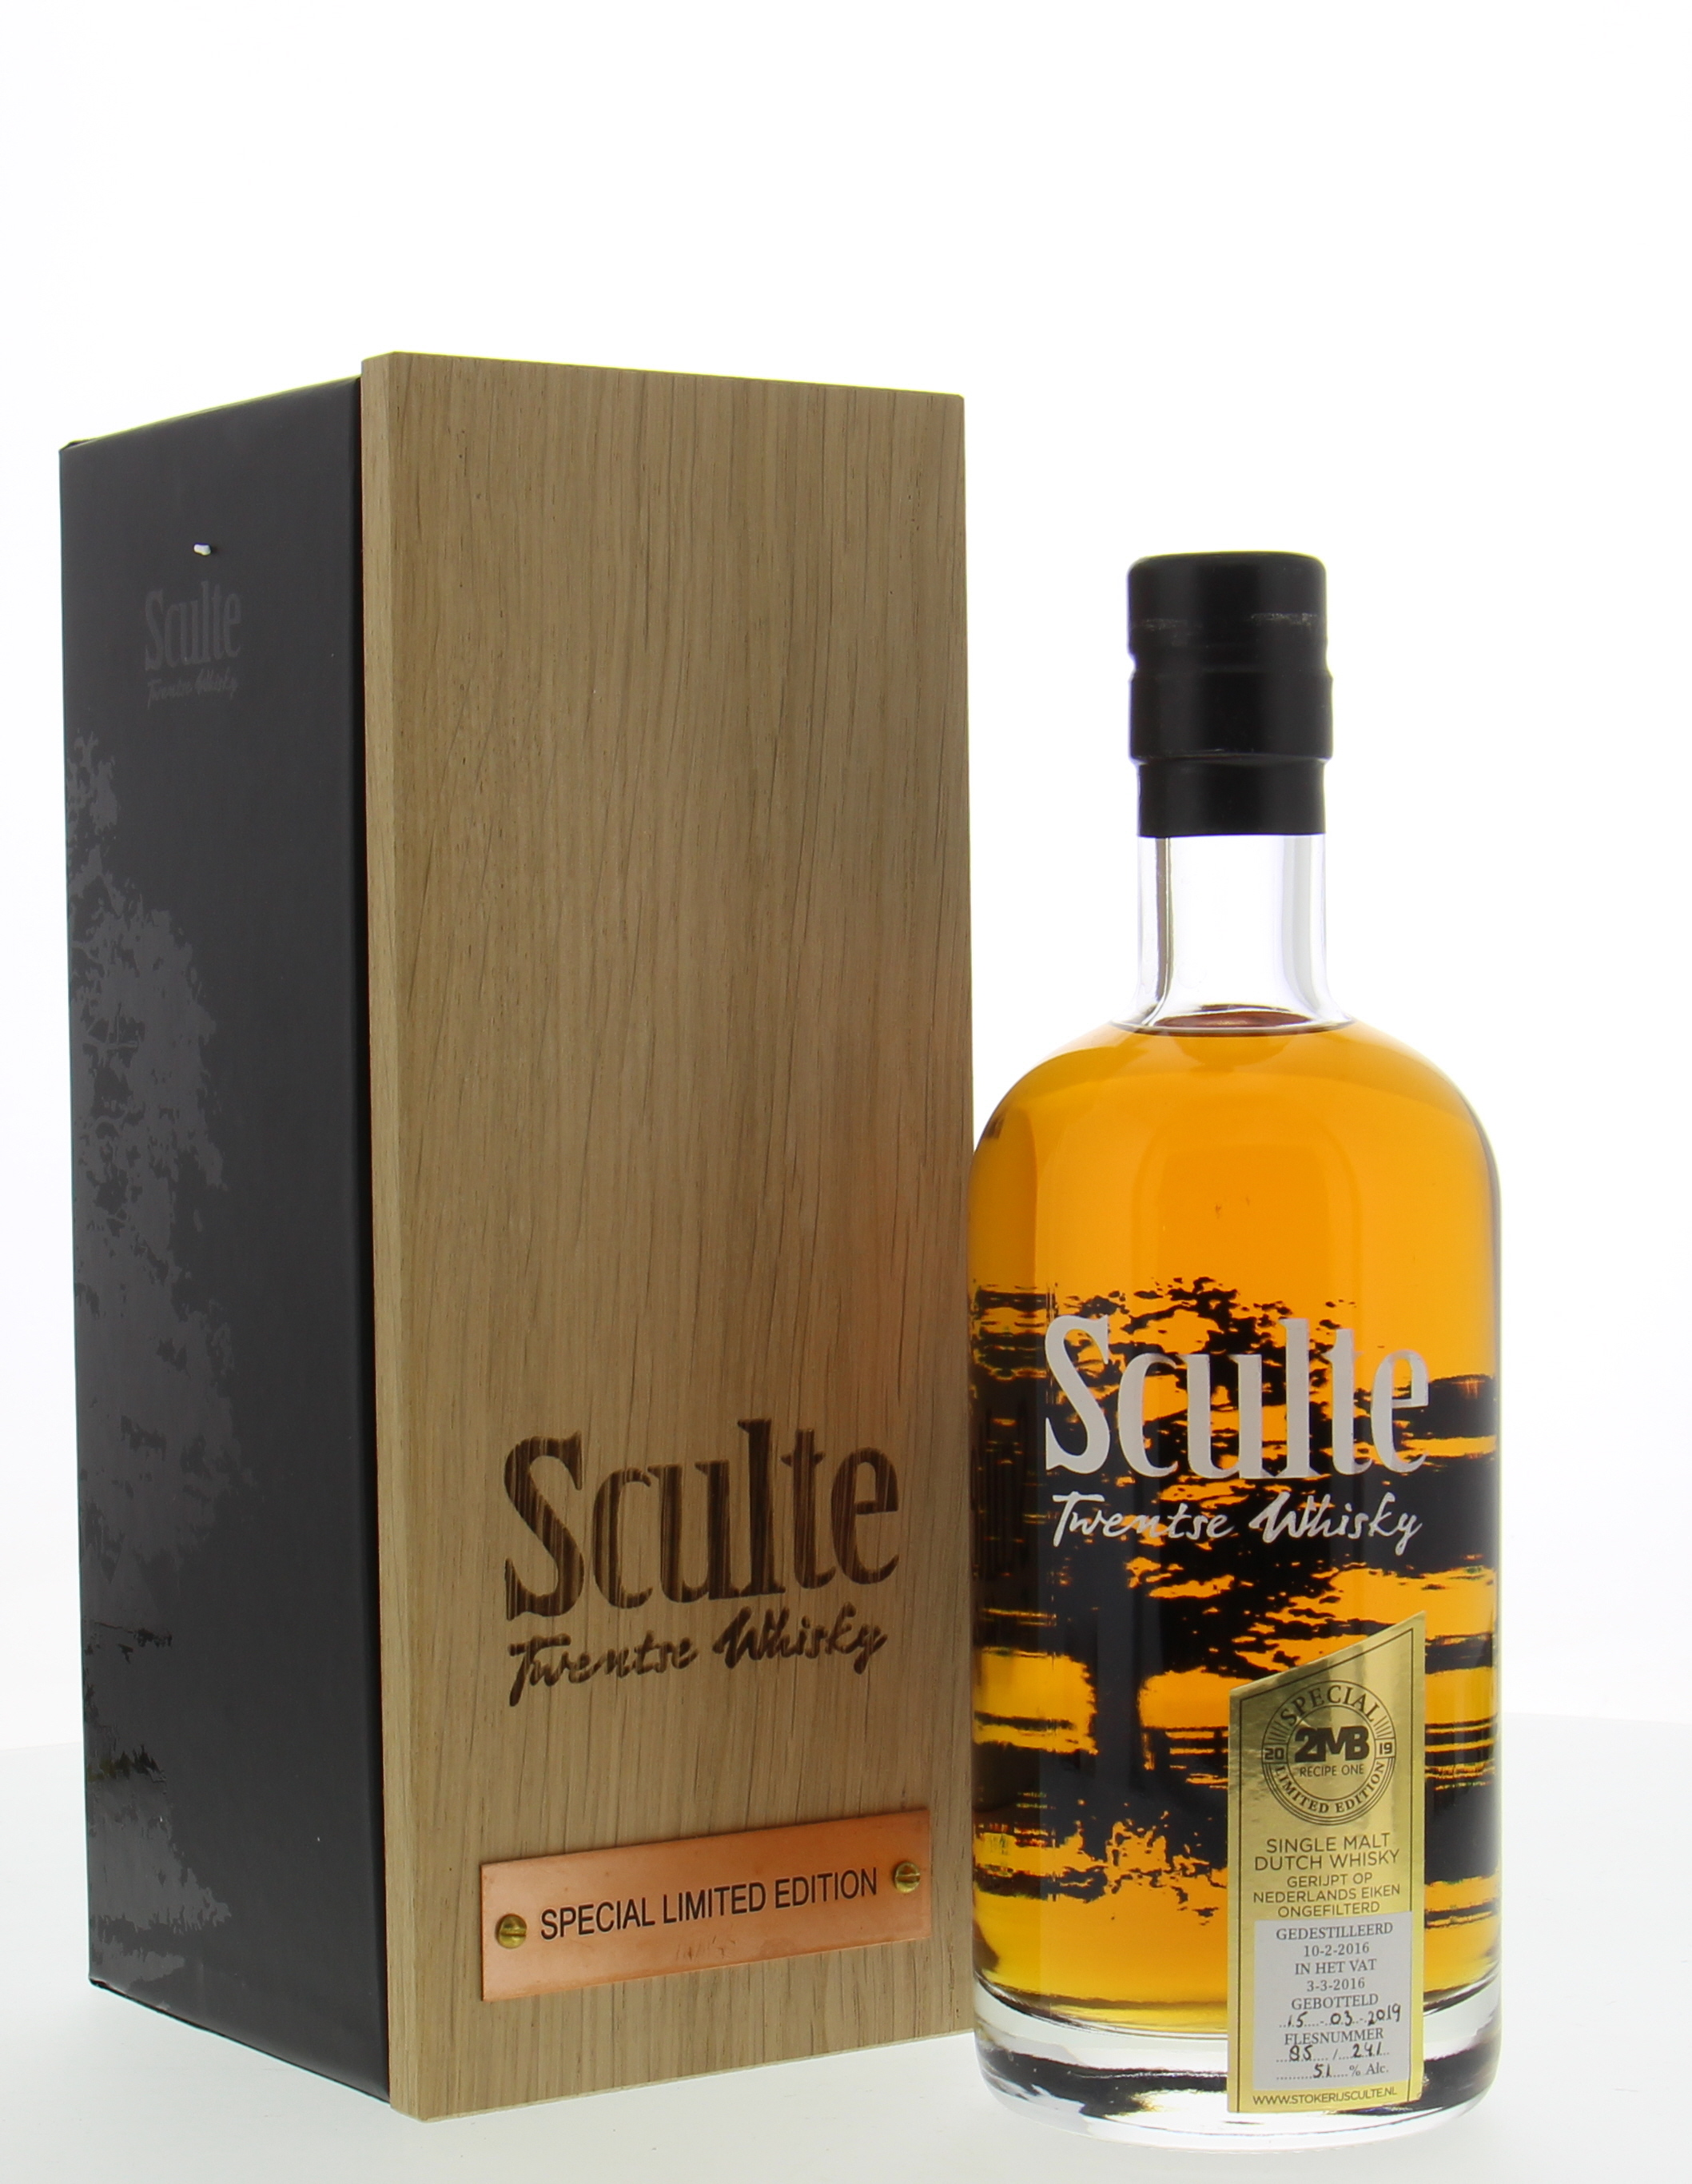 Stokerij Sculte - 2MB Recipe One Twentse Whisky 51% 2015